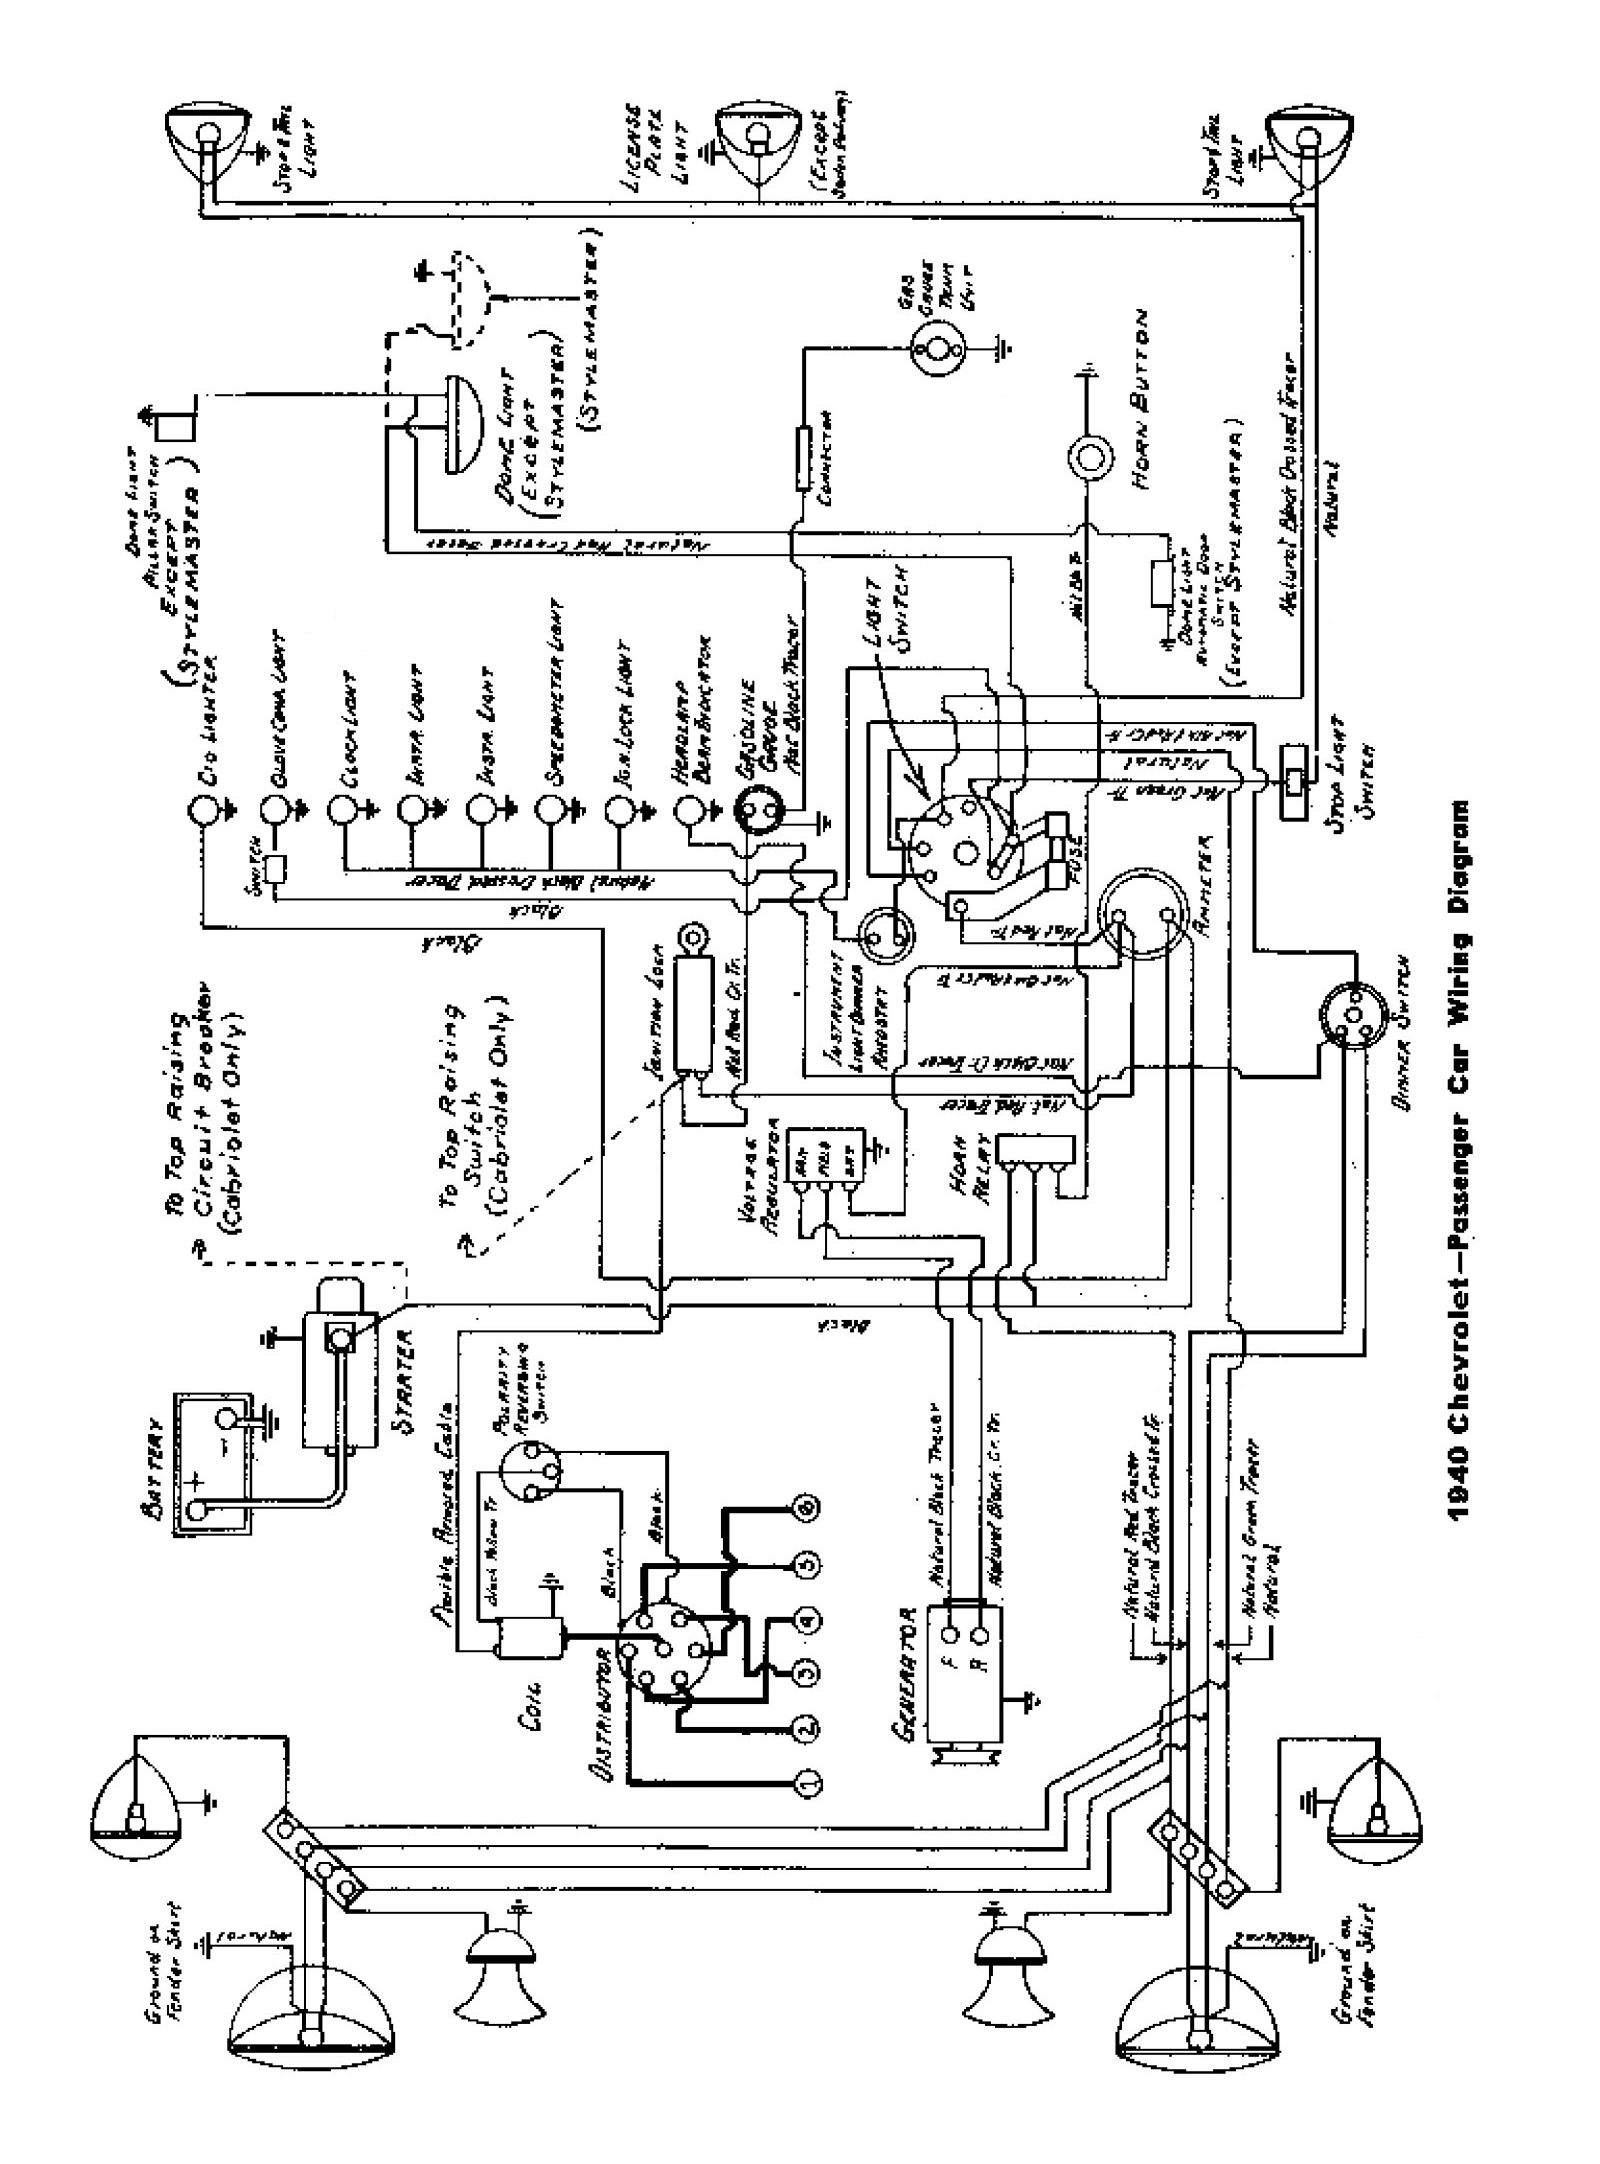 Chevy Wiring Diagrams Painless Harness Troubleshooting 1940 Passenger Car